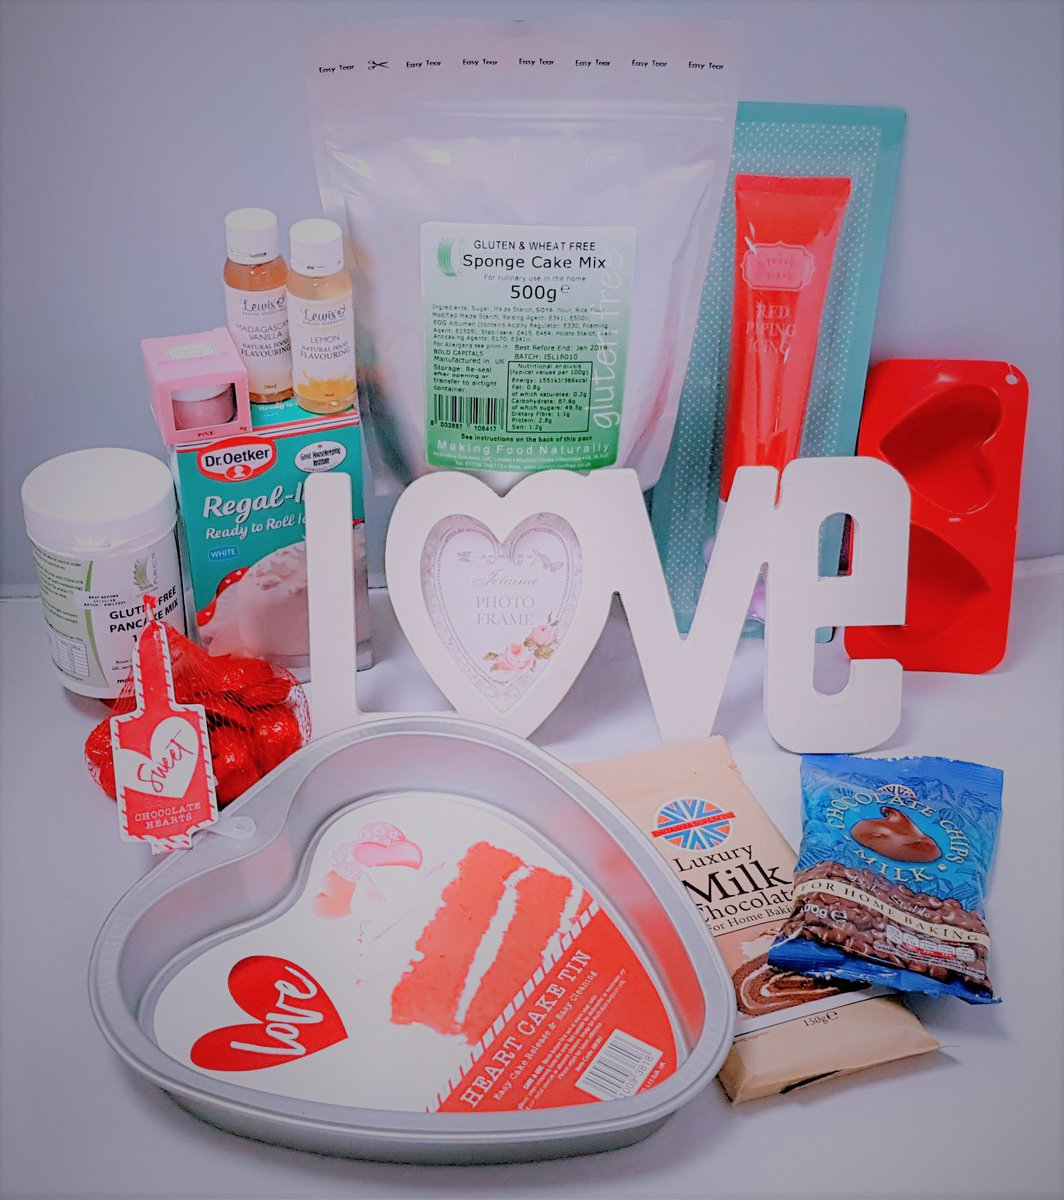 Our #glutenfree #ValentinesDay ❤️ #baking #Competition - Follow & RT to be in with a chance to #win our fabulous #giveaway - featuring our amazing Sponge Mix and Pancake Mix - #GoodLuck #nomnomnom